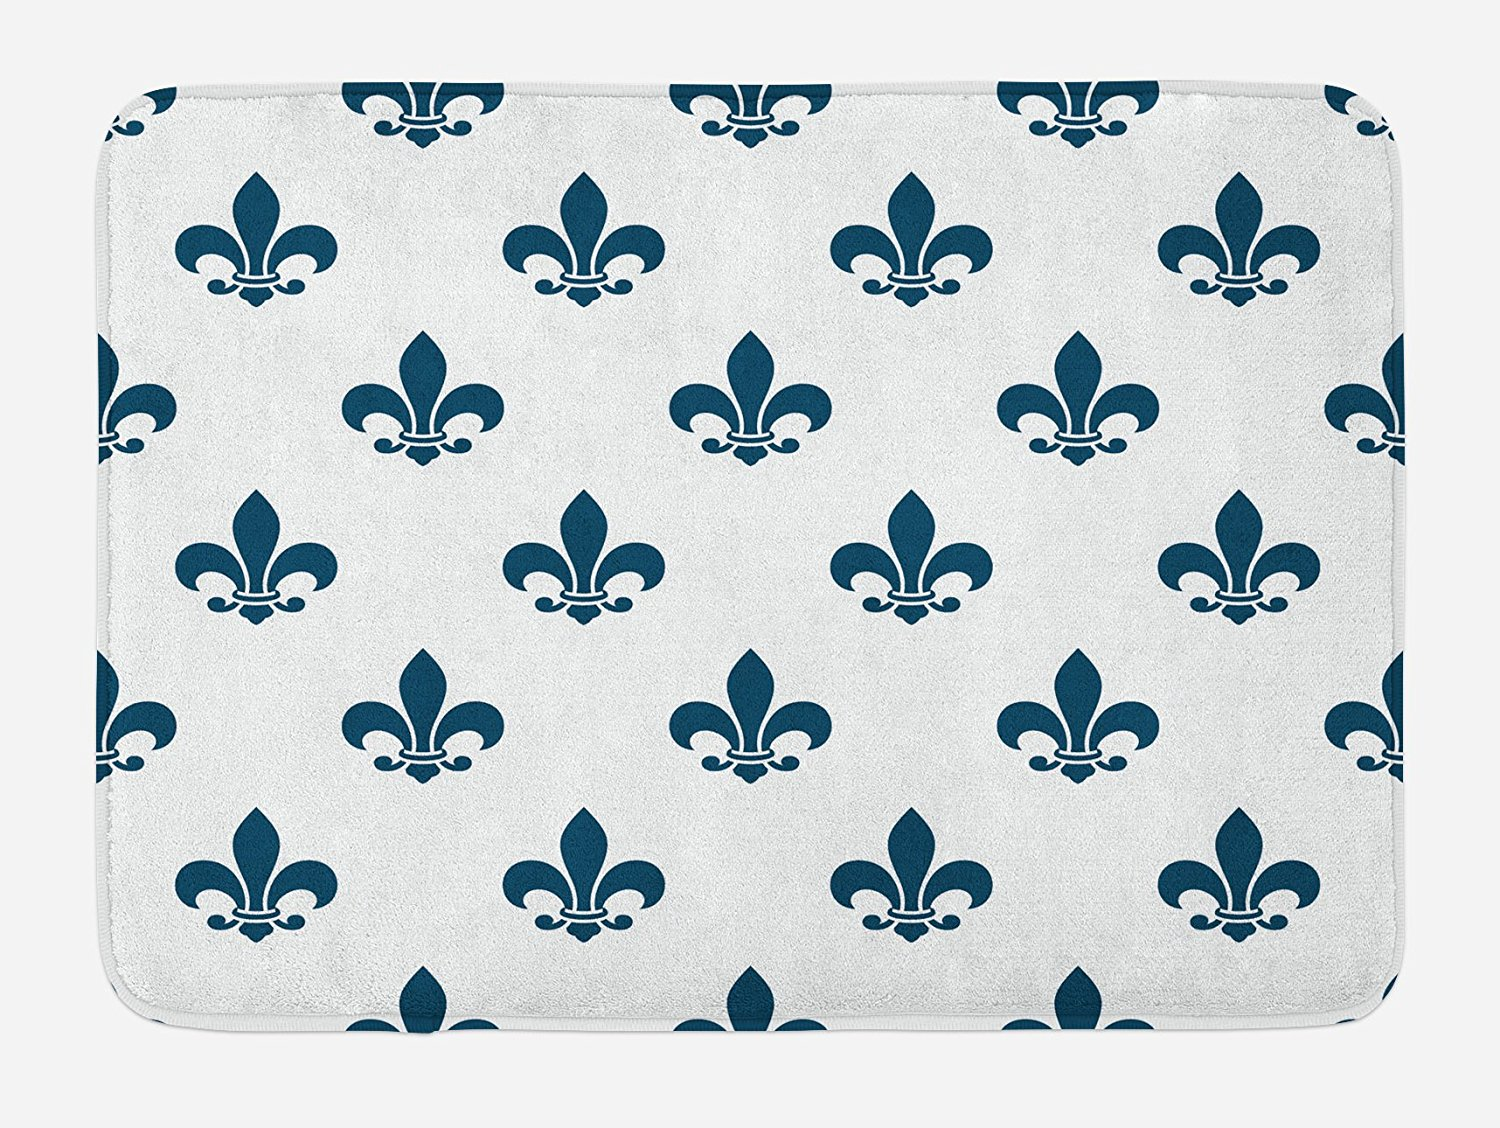 Fleur De Lis Bath Mat by Lunarable, Illustration of Fleur-de-Lis Motif Lily Shades Ornament Minimalistic, Plush Bathroom Decor Mat with Non Slip Backing, 29.5 W X 17.5 W Inches, Cream Night Blue